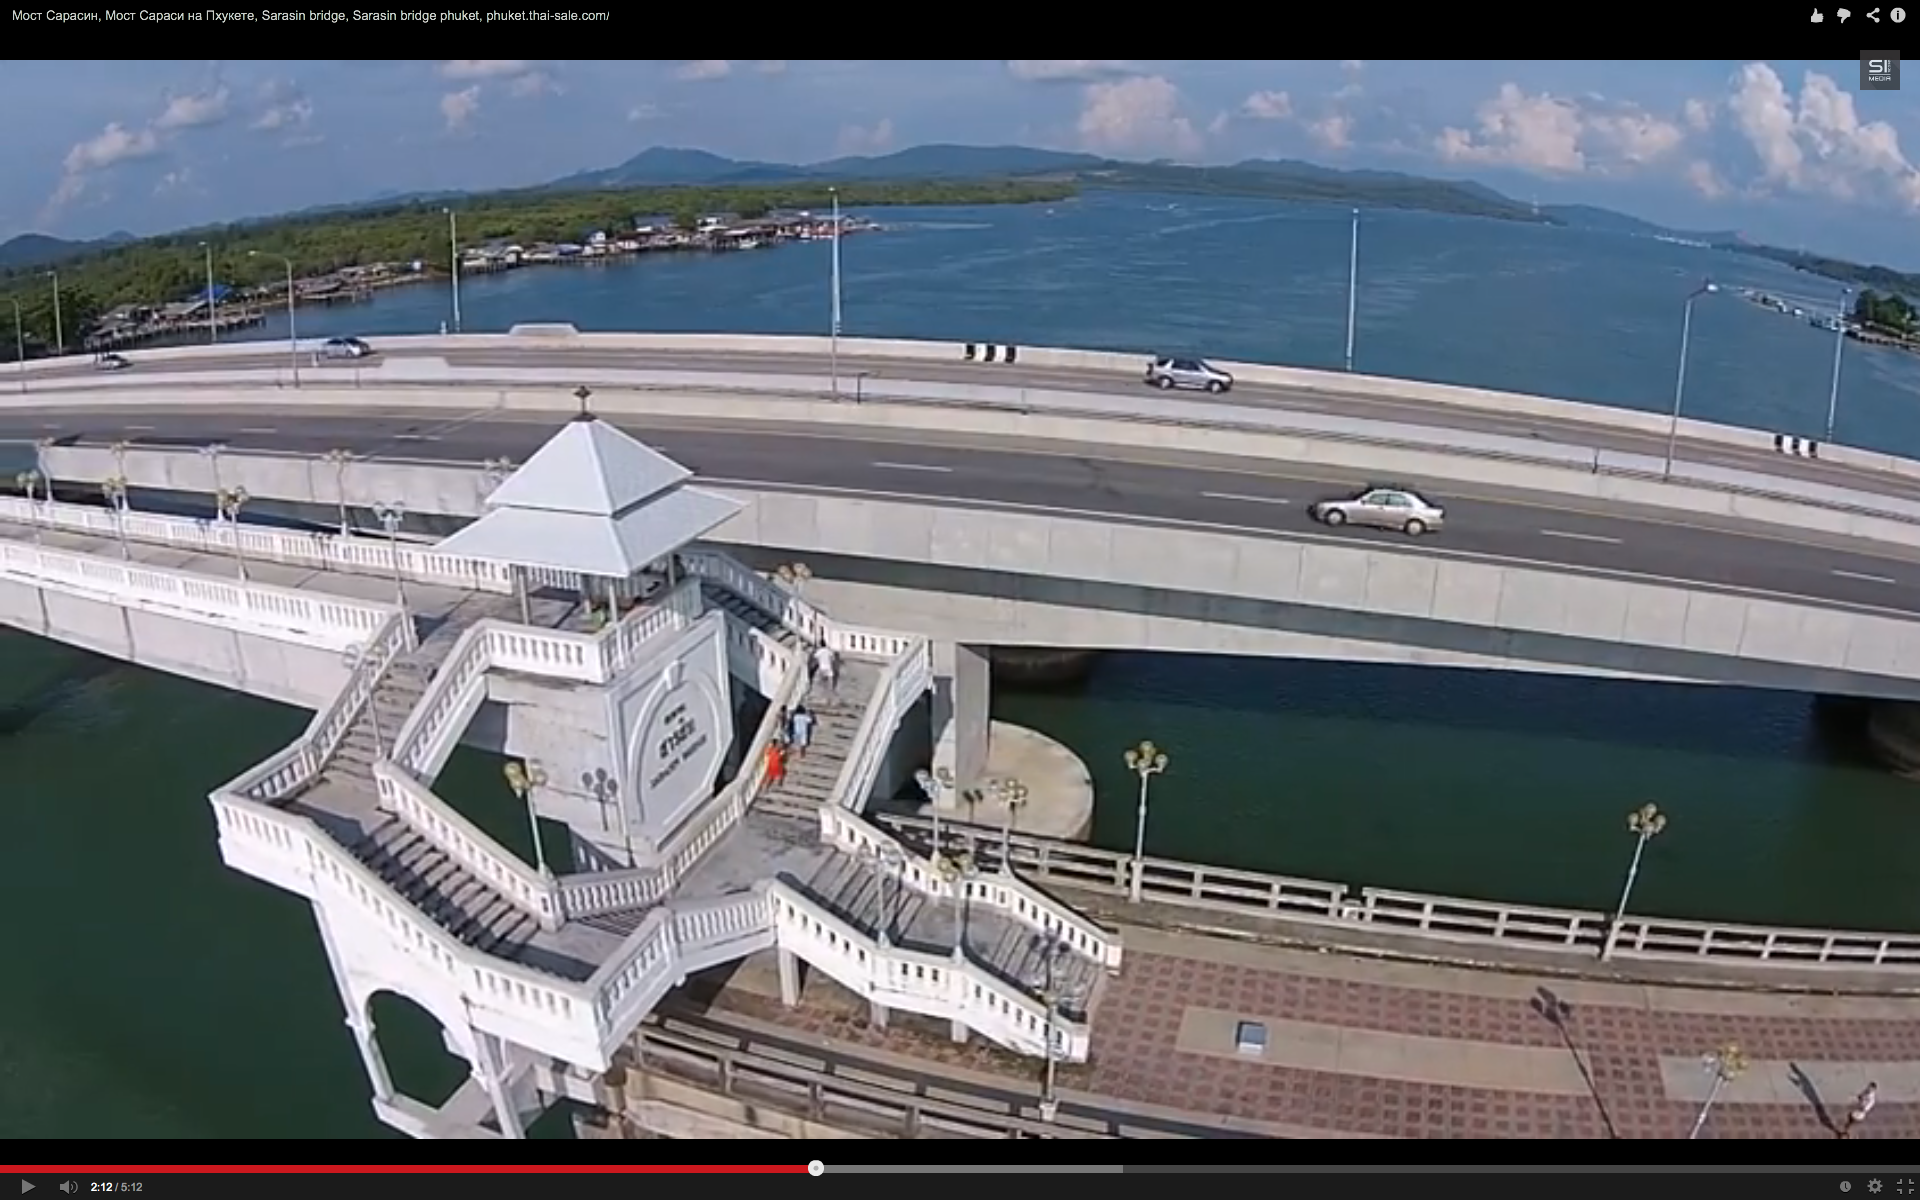 Видео Мост Сарасин, Мост Сарасин на Пхукете, Sarasin bridge, Sarasin bridge phuket